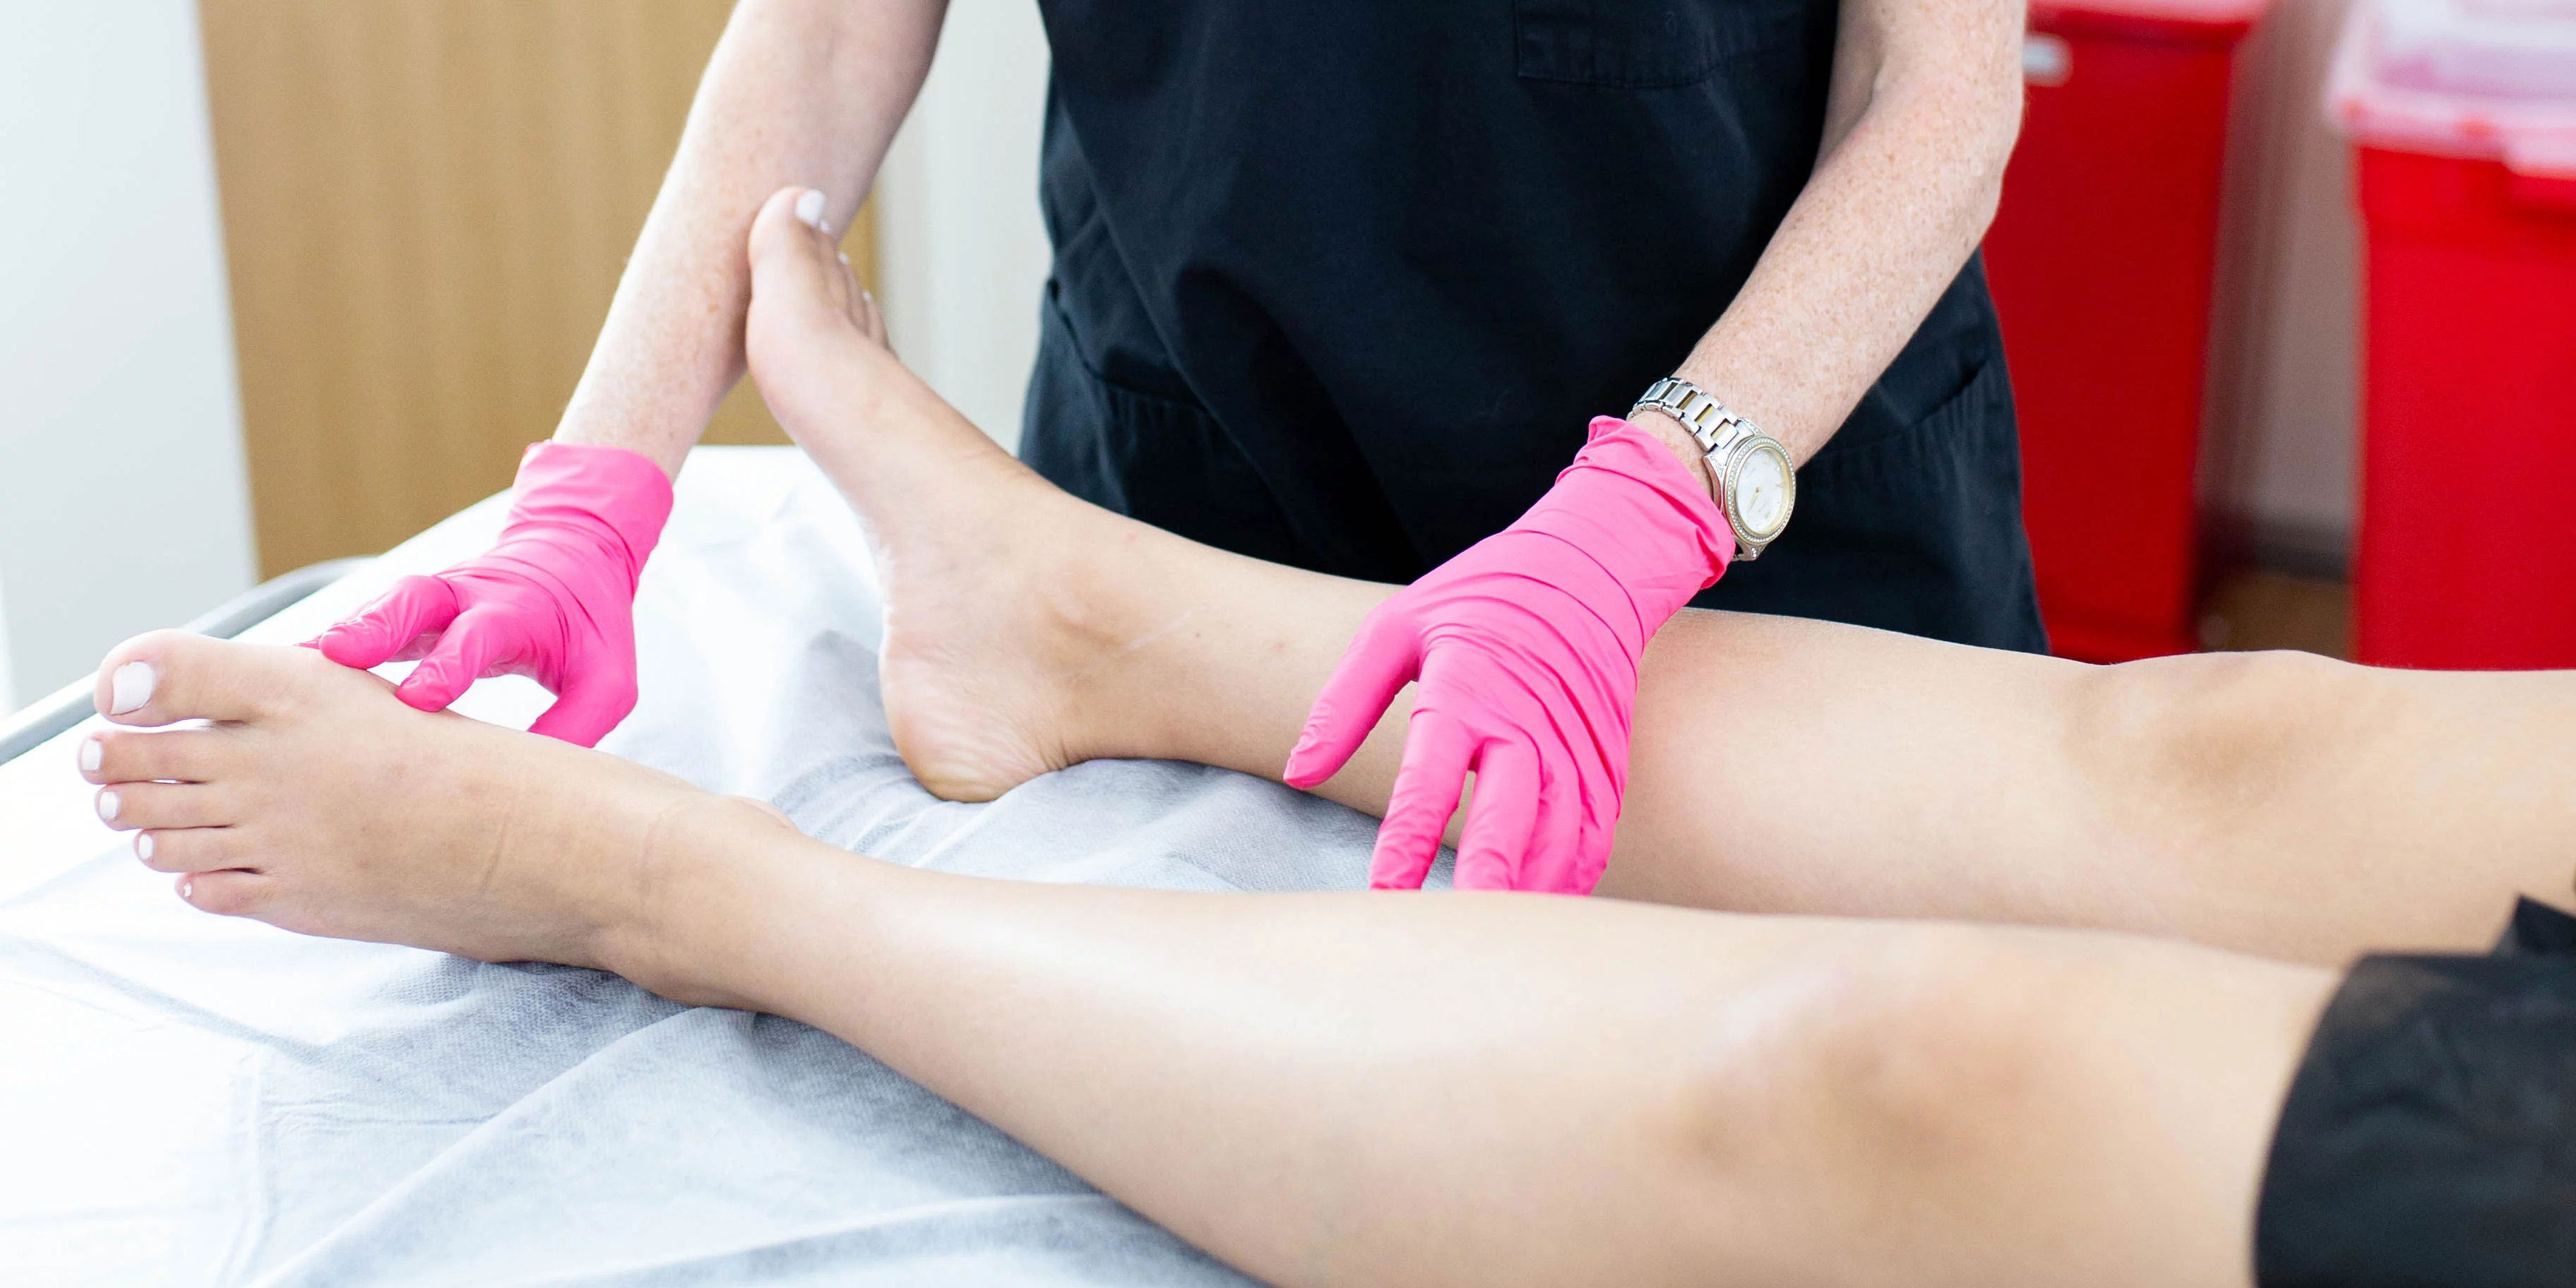 What Should You Do After a Sclerotherapy Session?